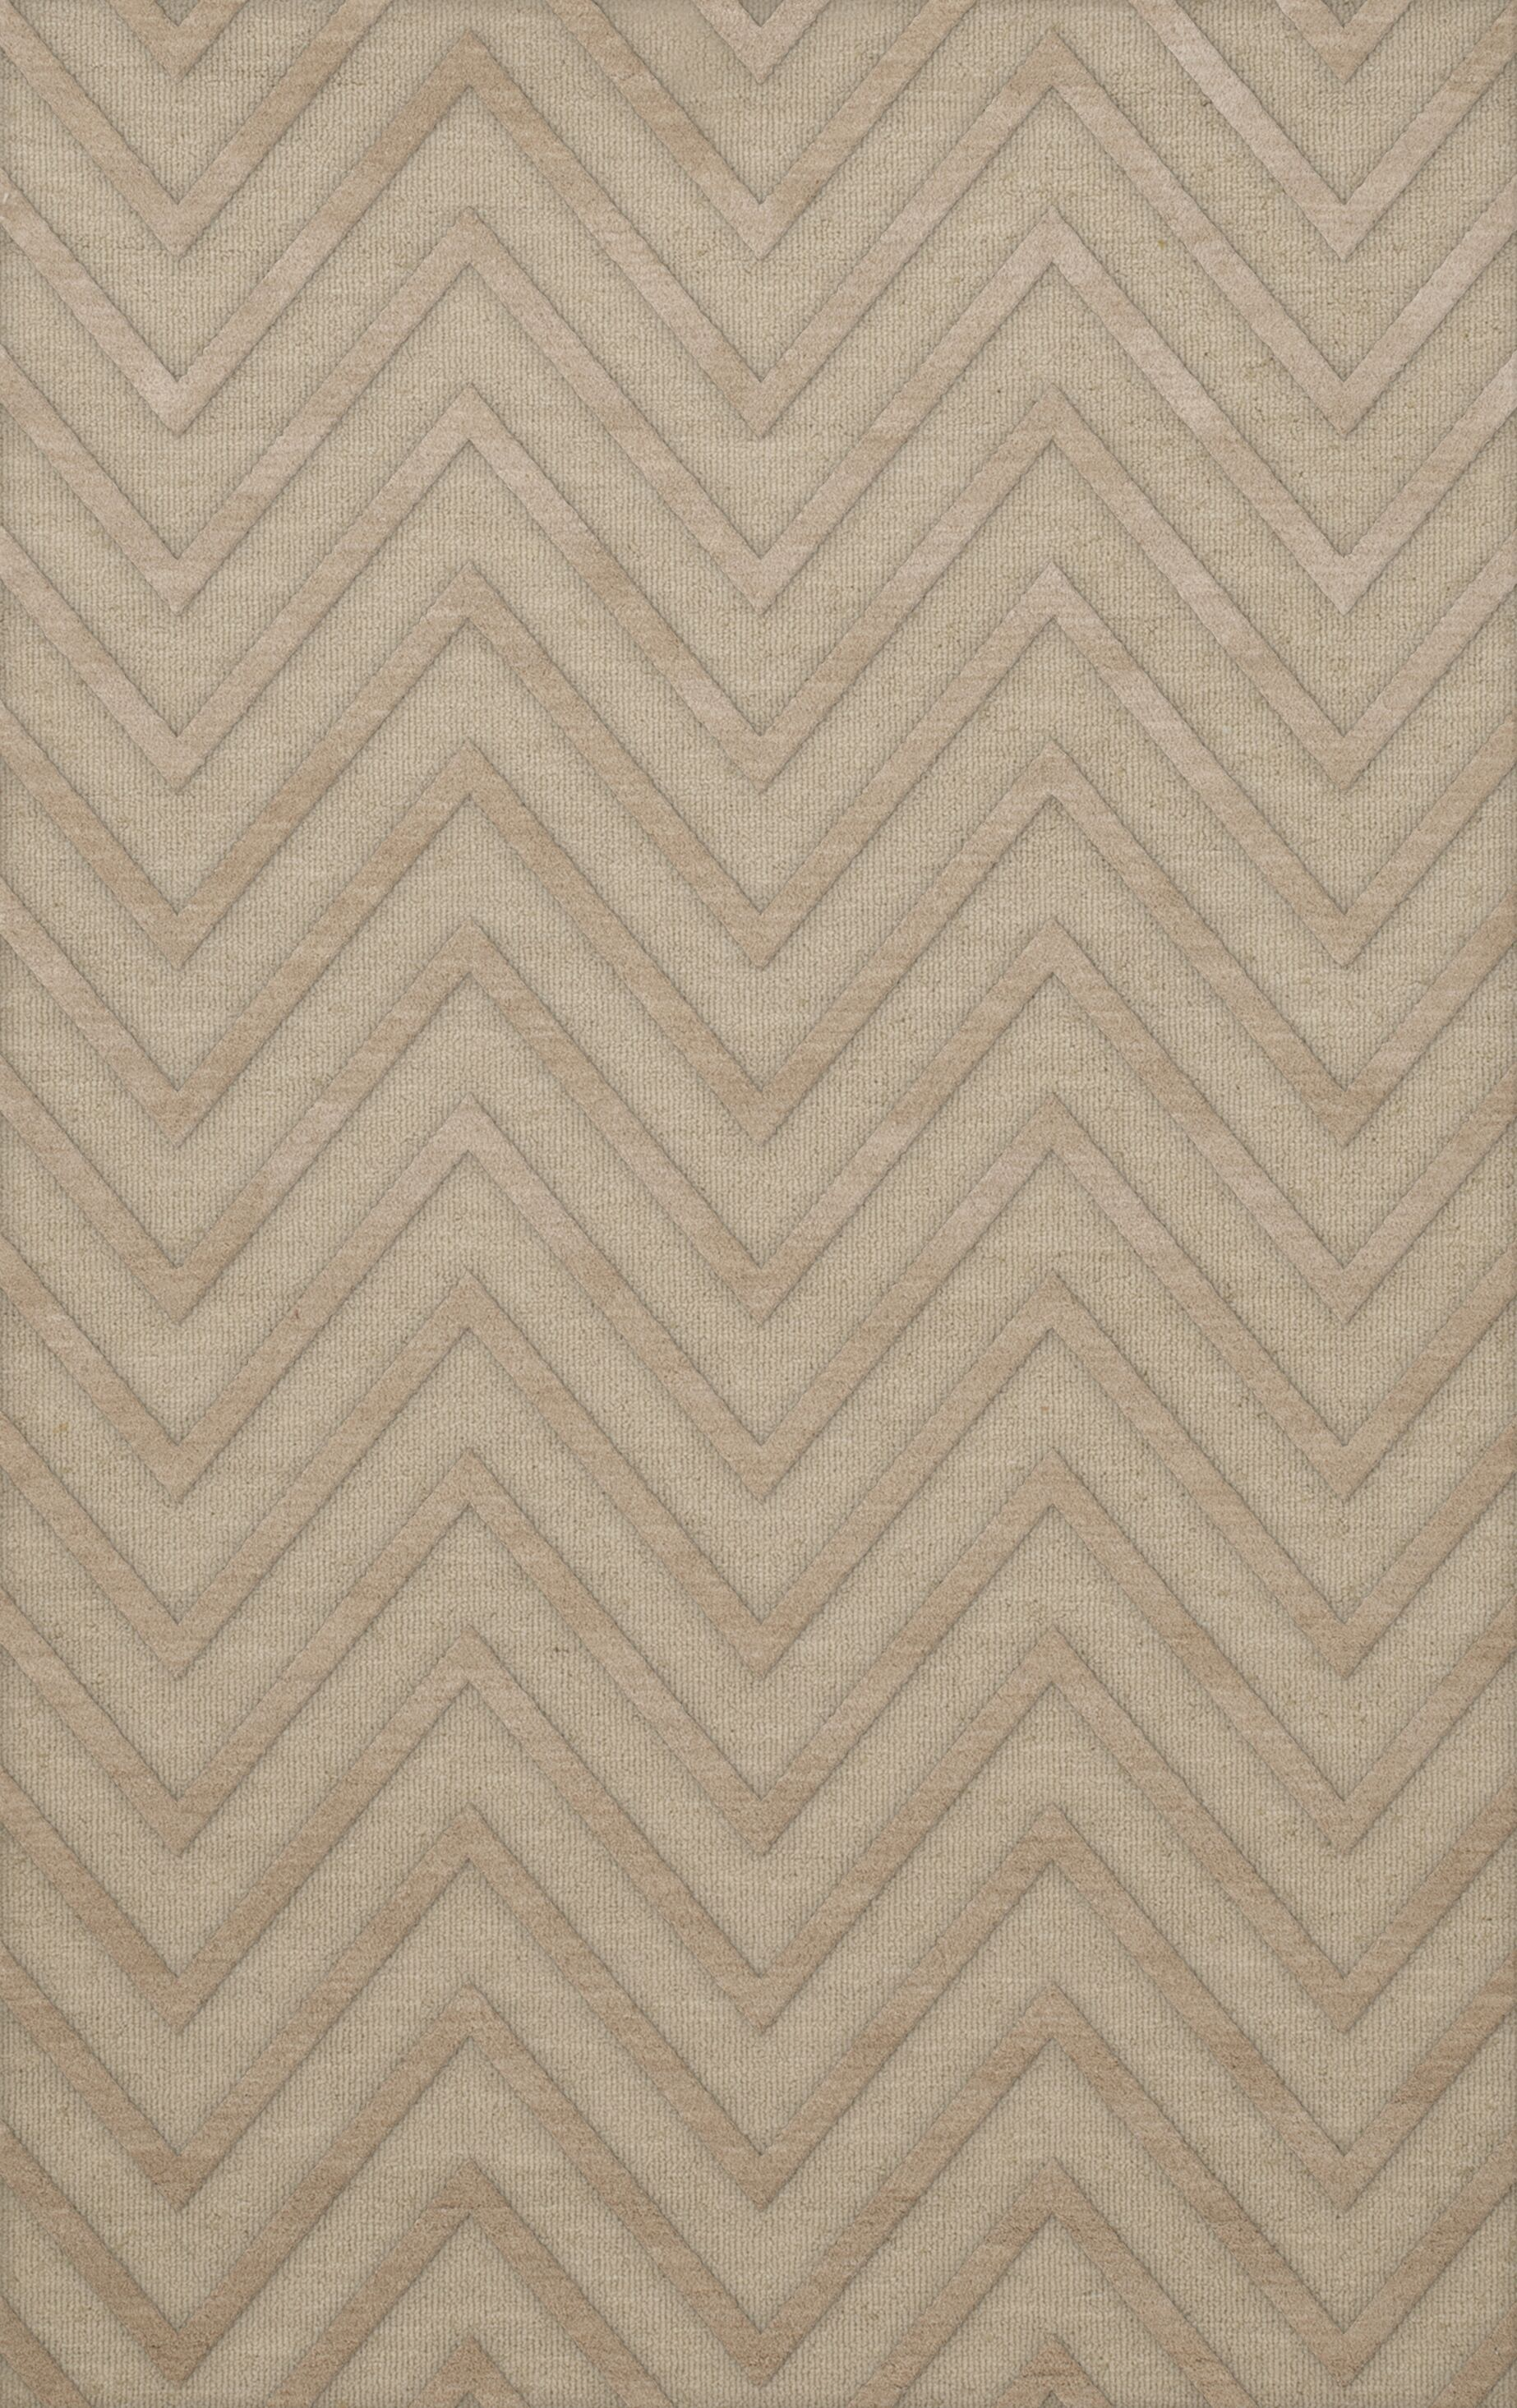 Dover Linen Area Rug Rug Size: Rectangle 5' x 8'